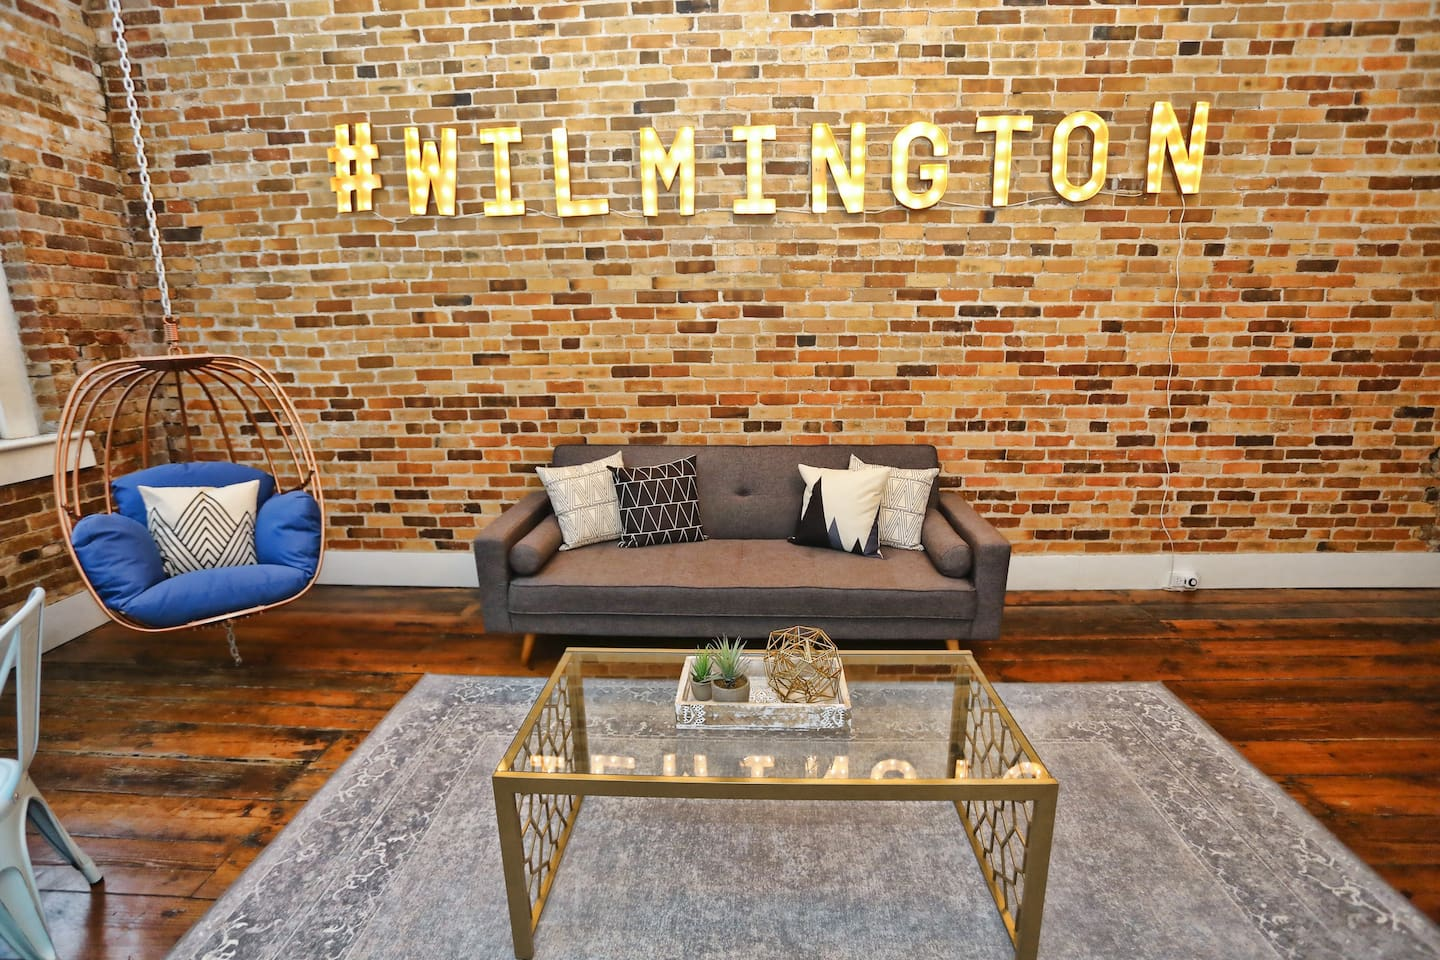 Living Room with swinging chair, light up #wilmington sign, and convertible mid-century sofa